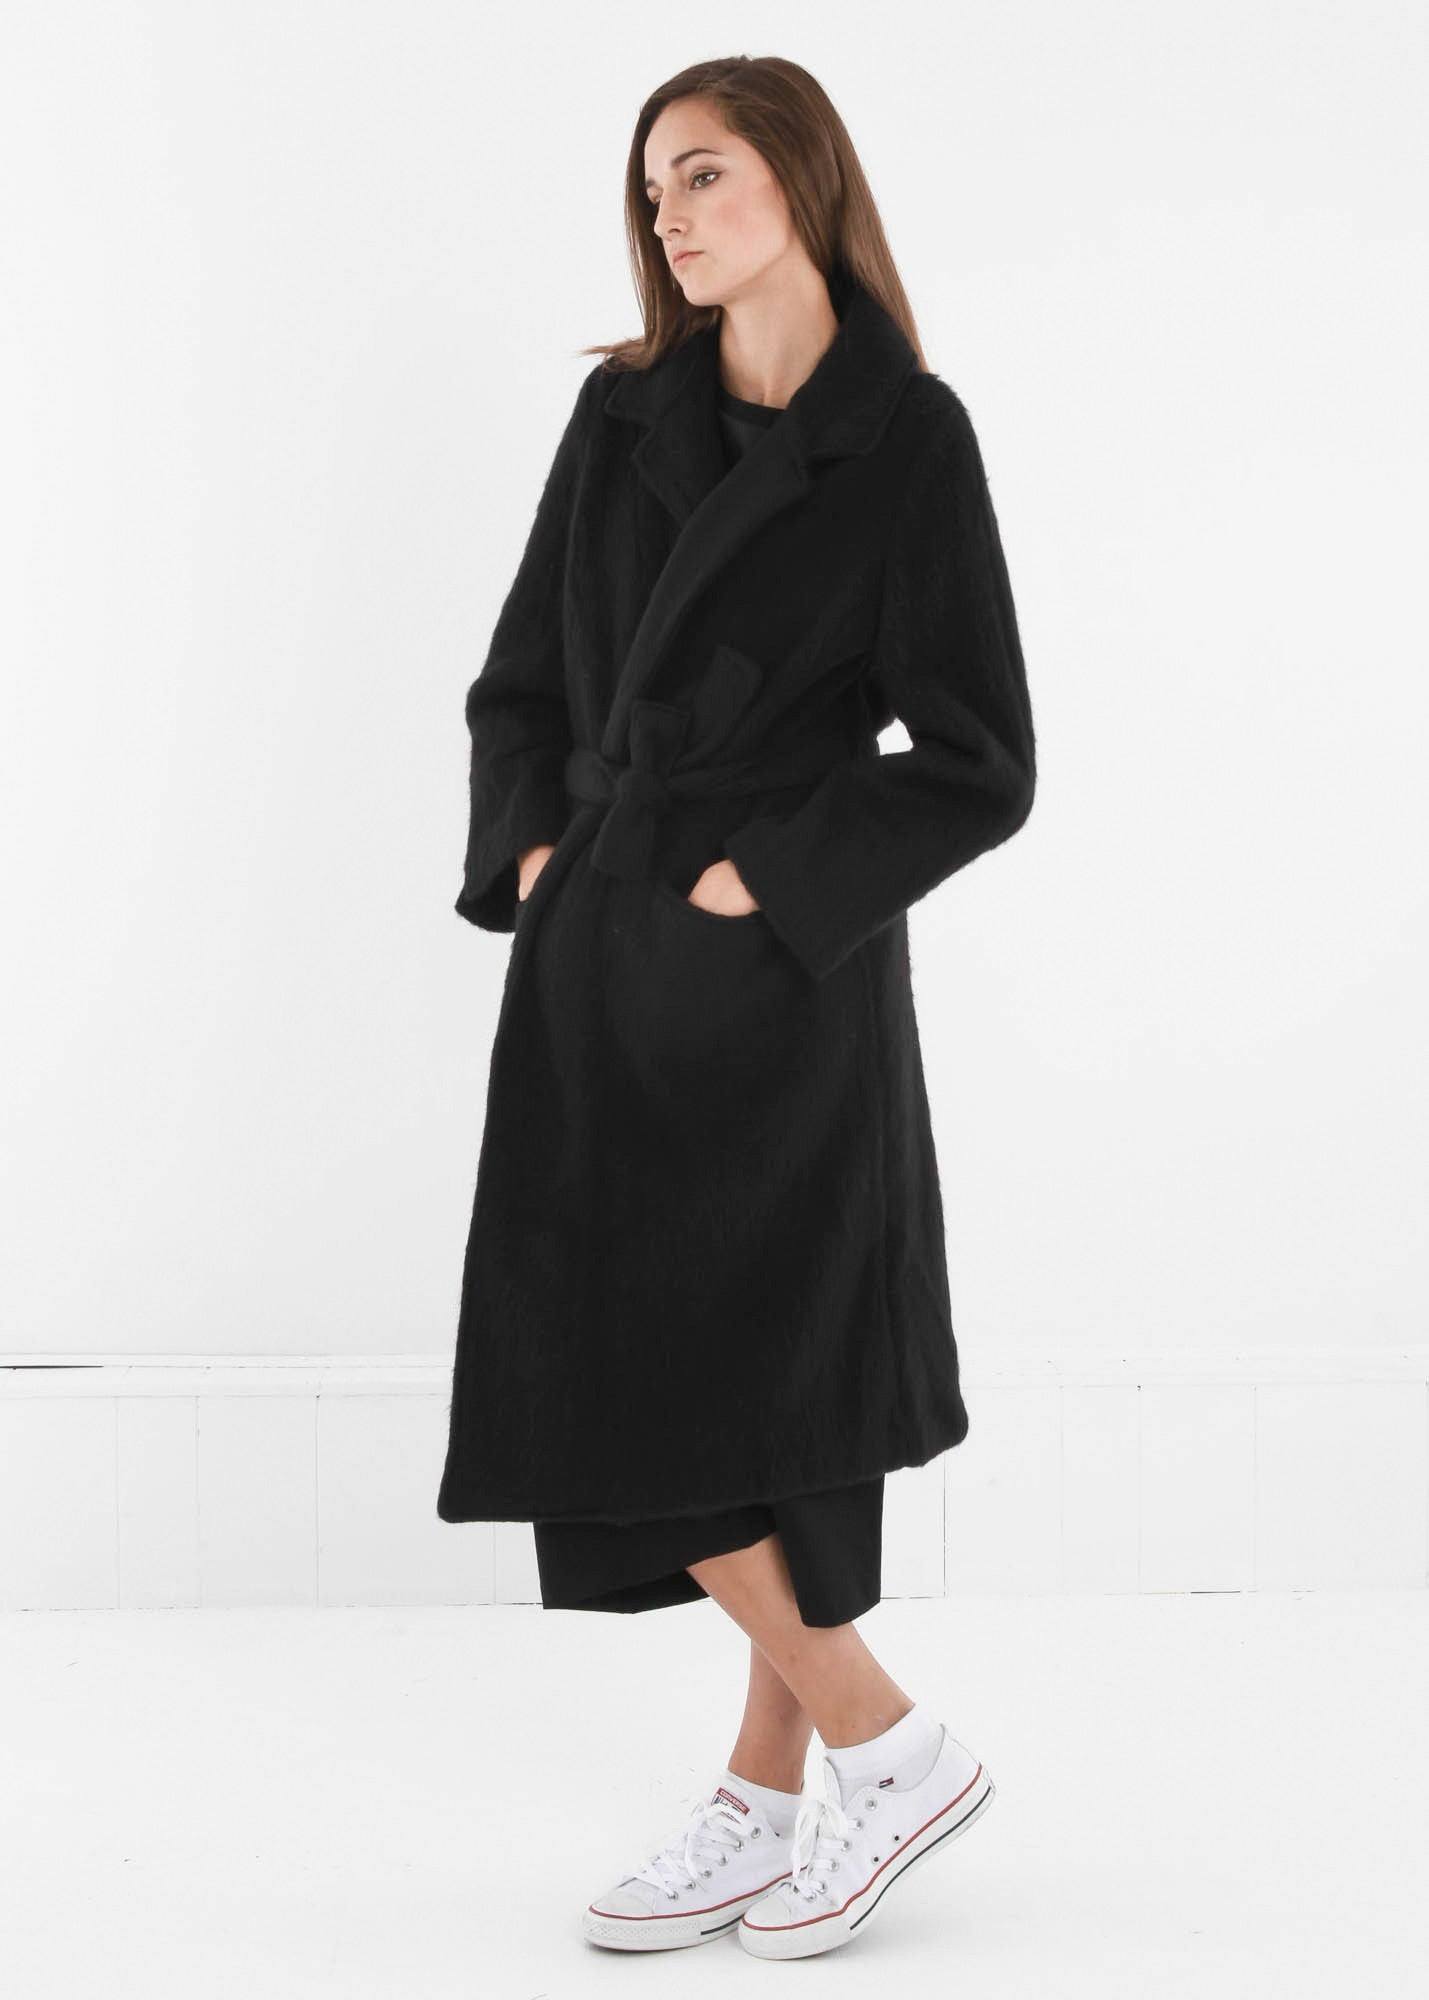 Base Range Black Pyrénées Coat - New Classics Studios  - 1